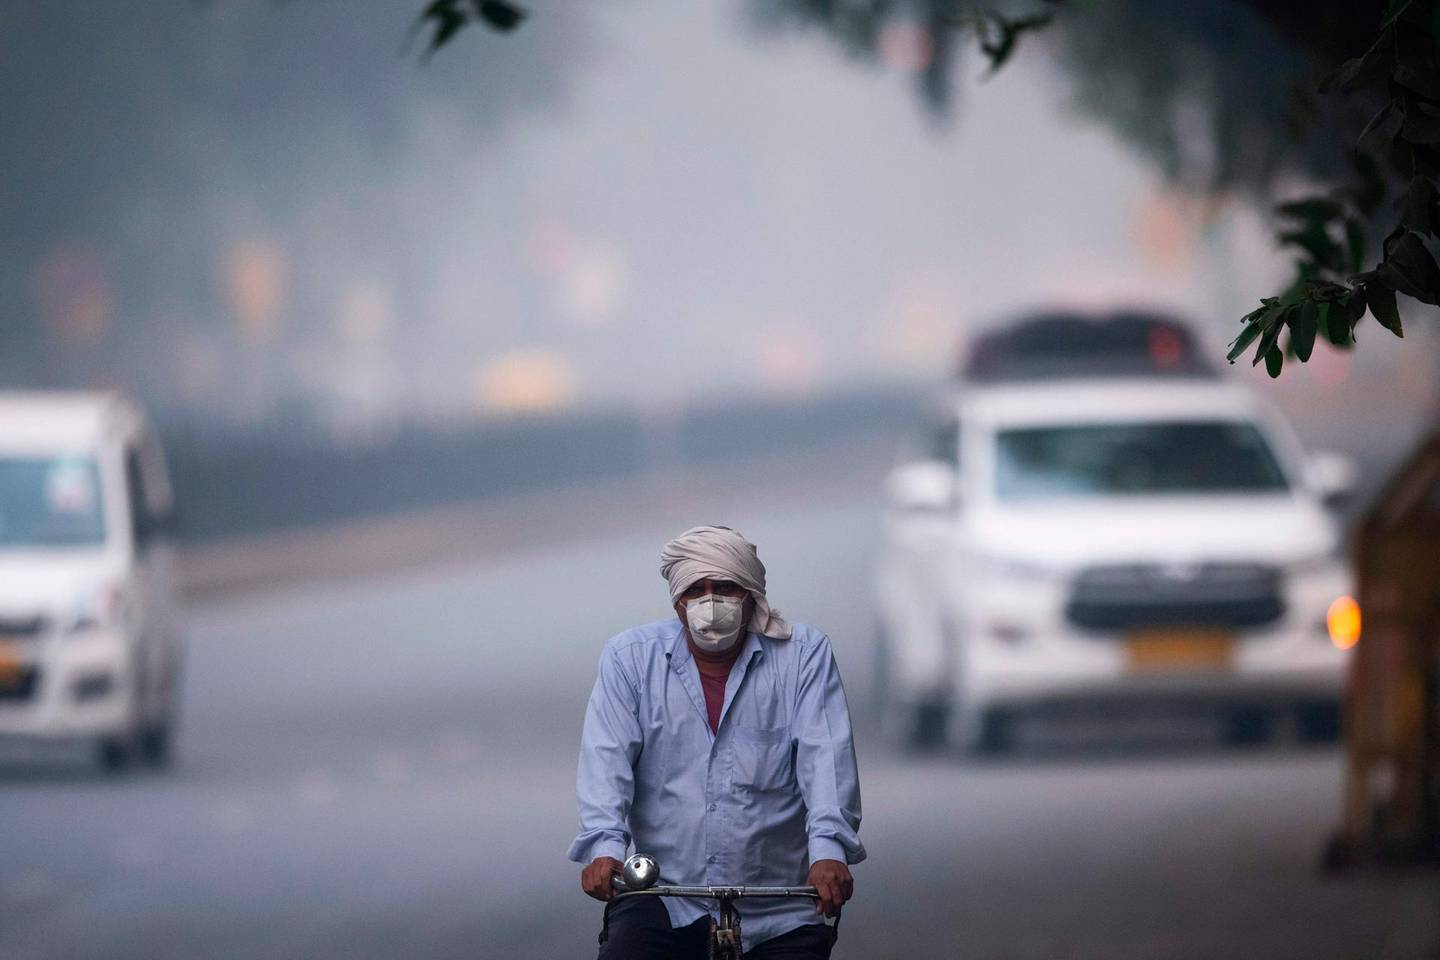 """A man wearing protective face mask rides a bicycle along a street in smoggy conditions in New Delhi on November 4, 2019. Millions of people in India's capital started the week on November 4 choking through """"eye-burning"""" smog, with schools closed, cars taken off the road and construction halted. / AFP / Jewel SAMAD"""